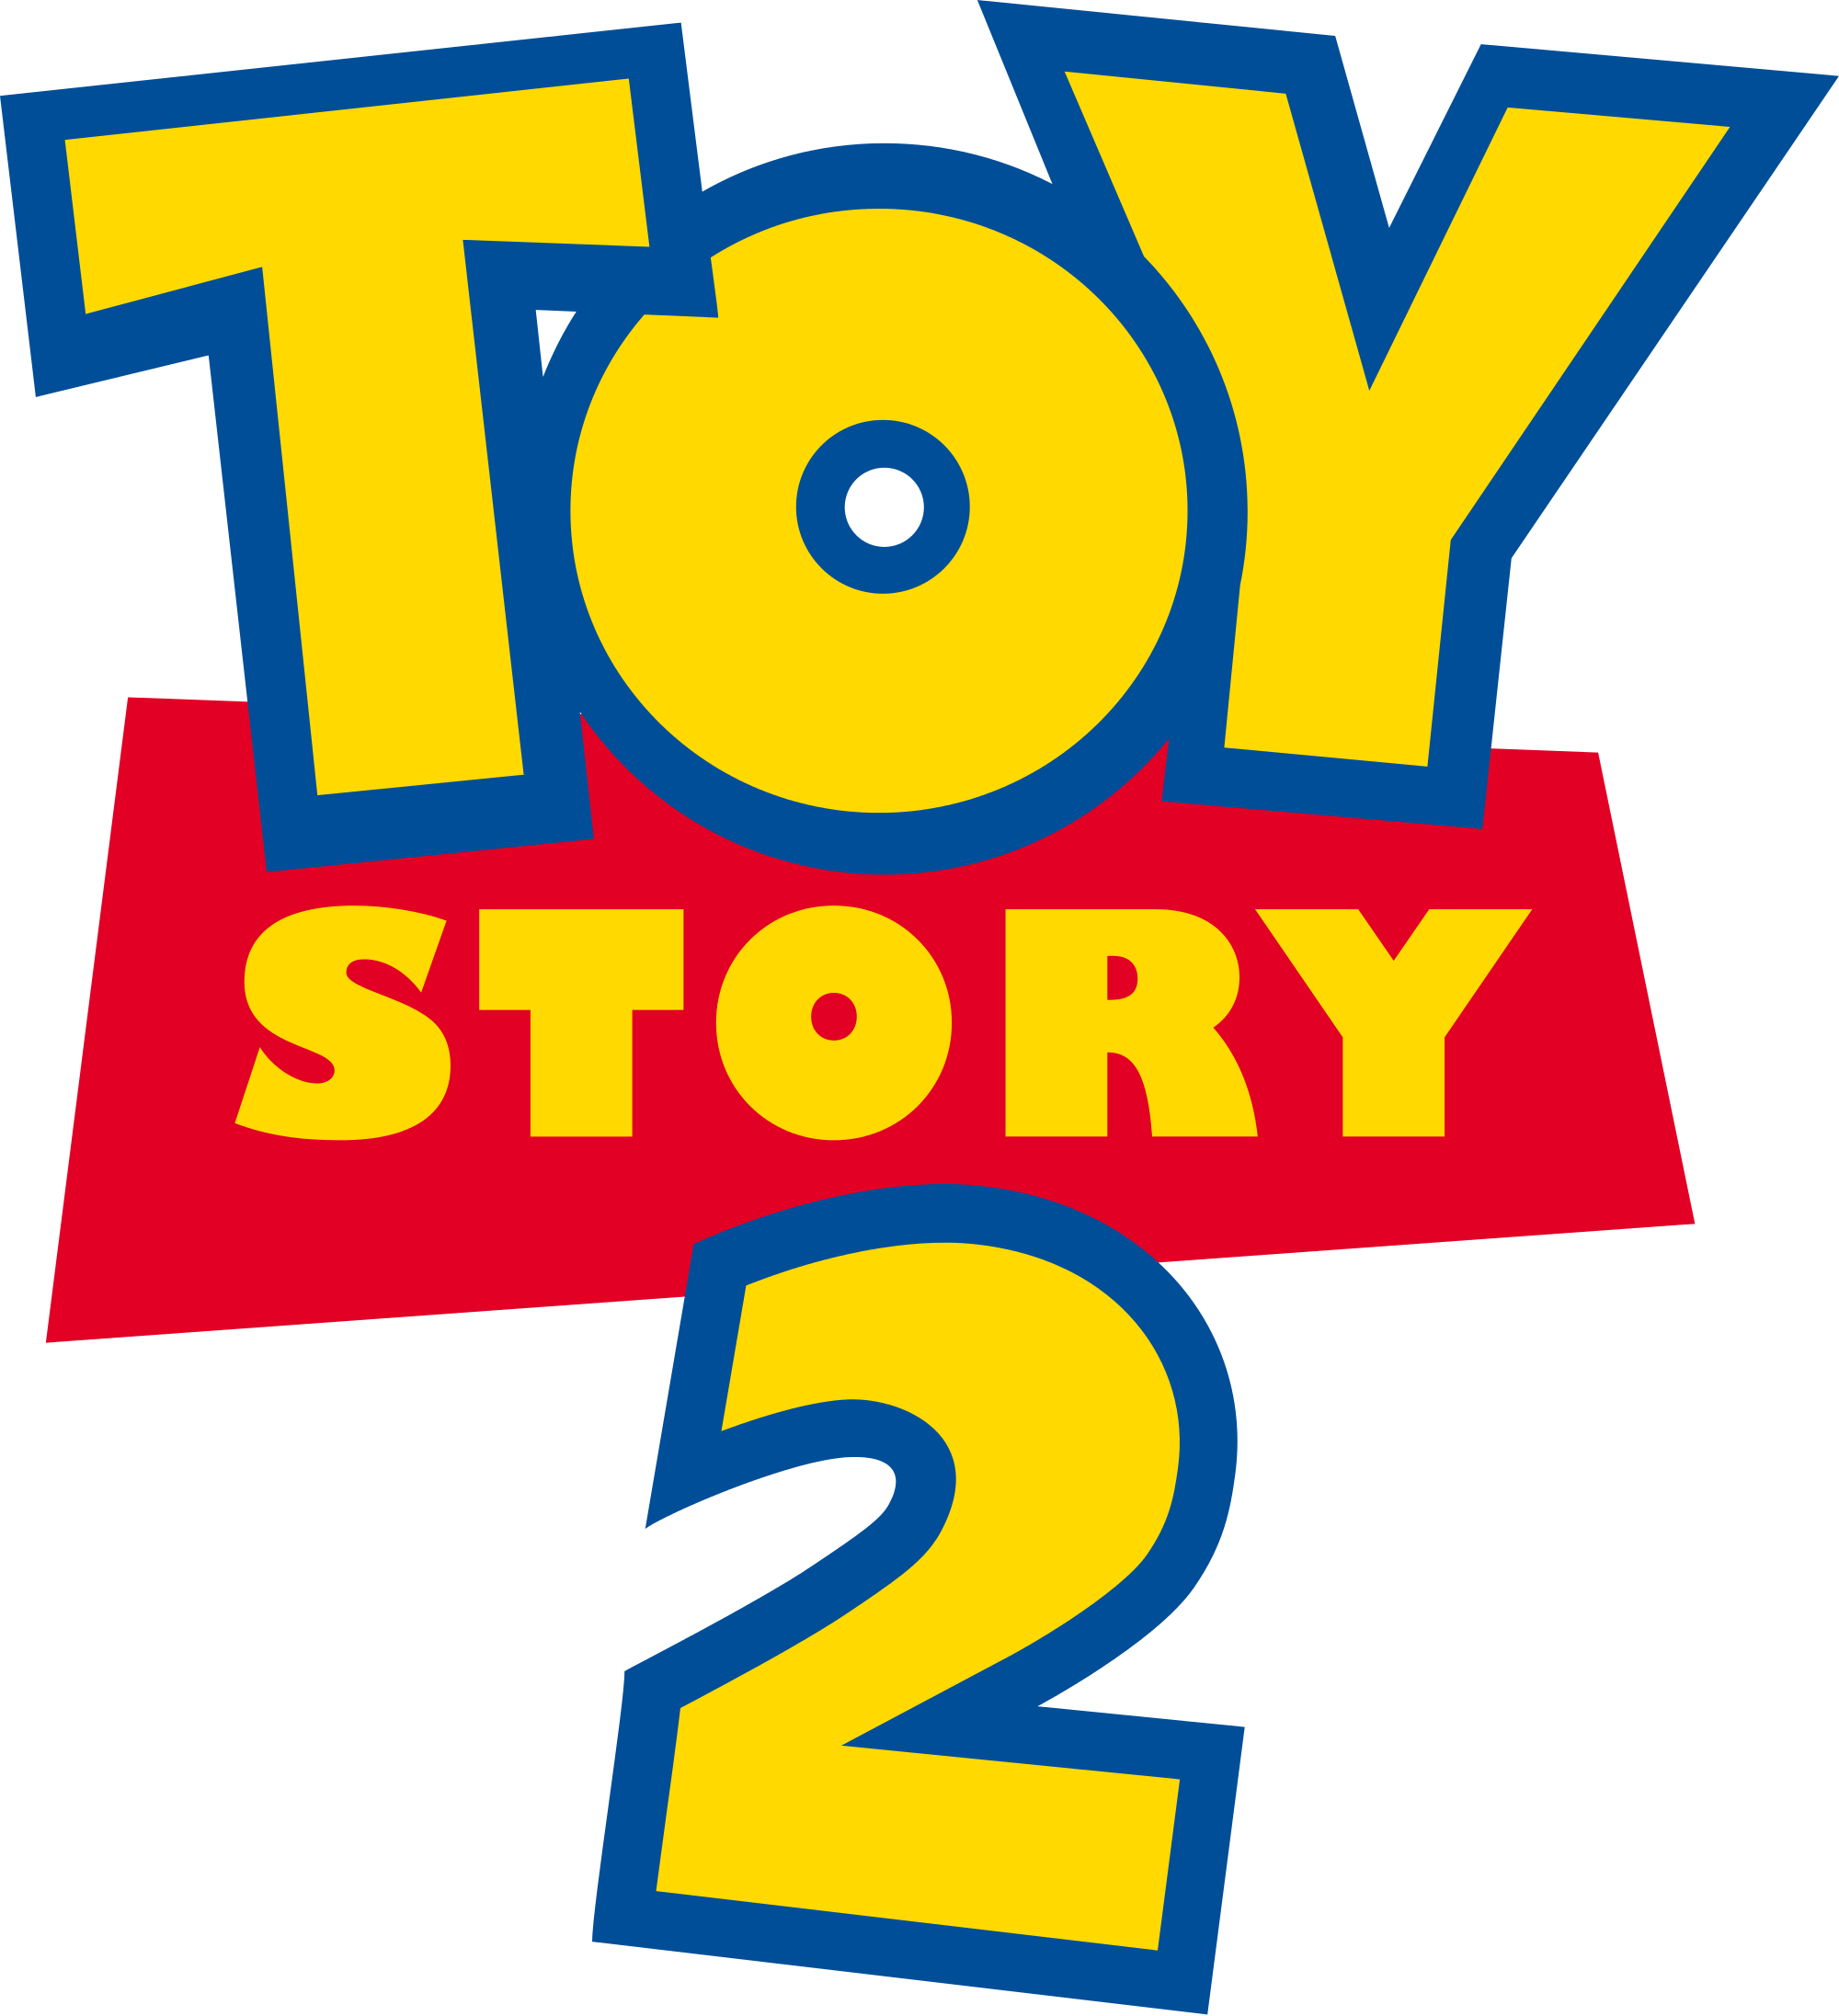 Toy story 2 png. Image px logo svg